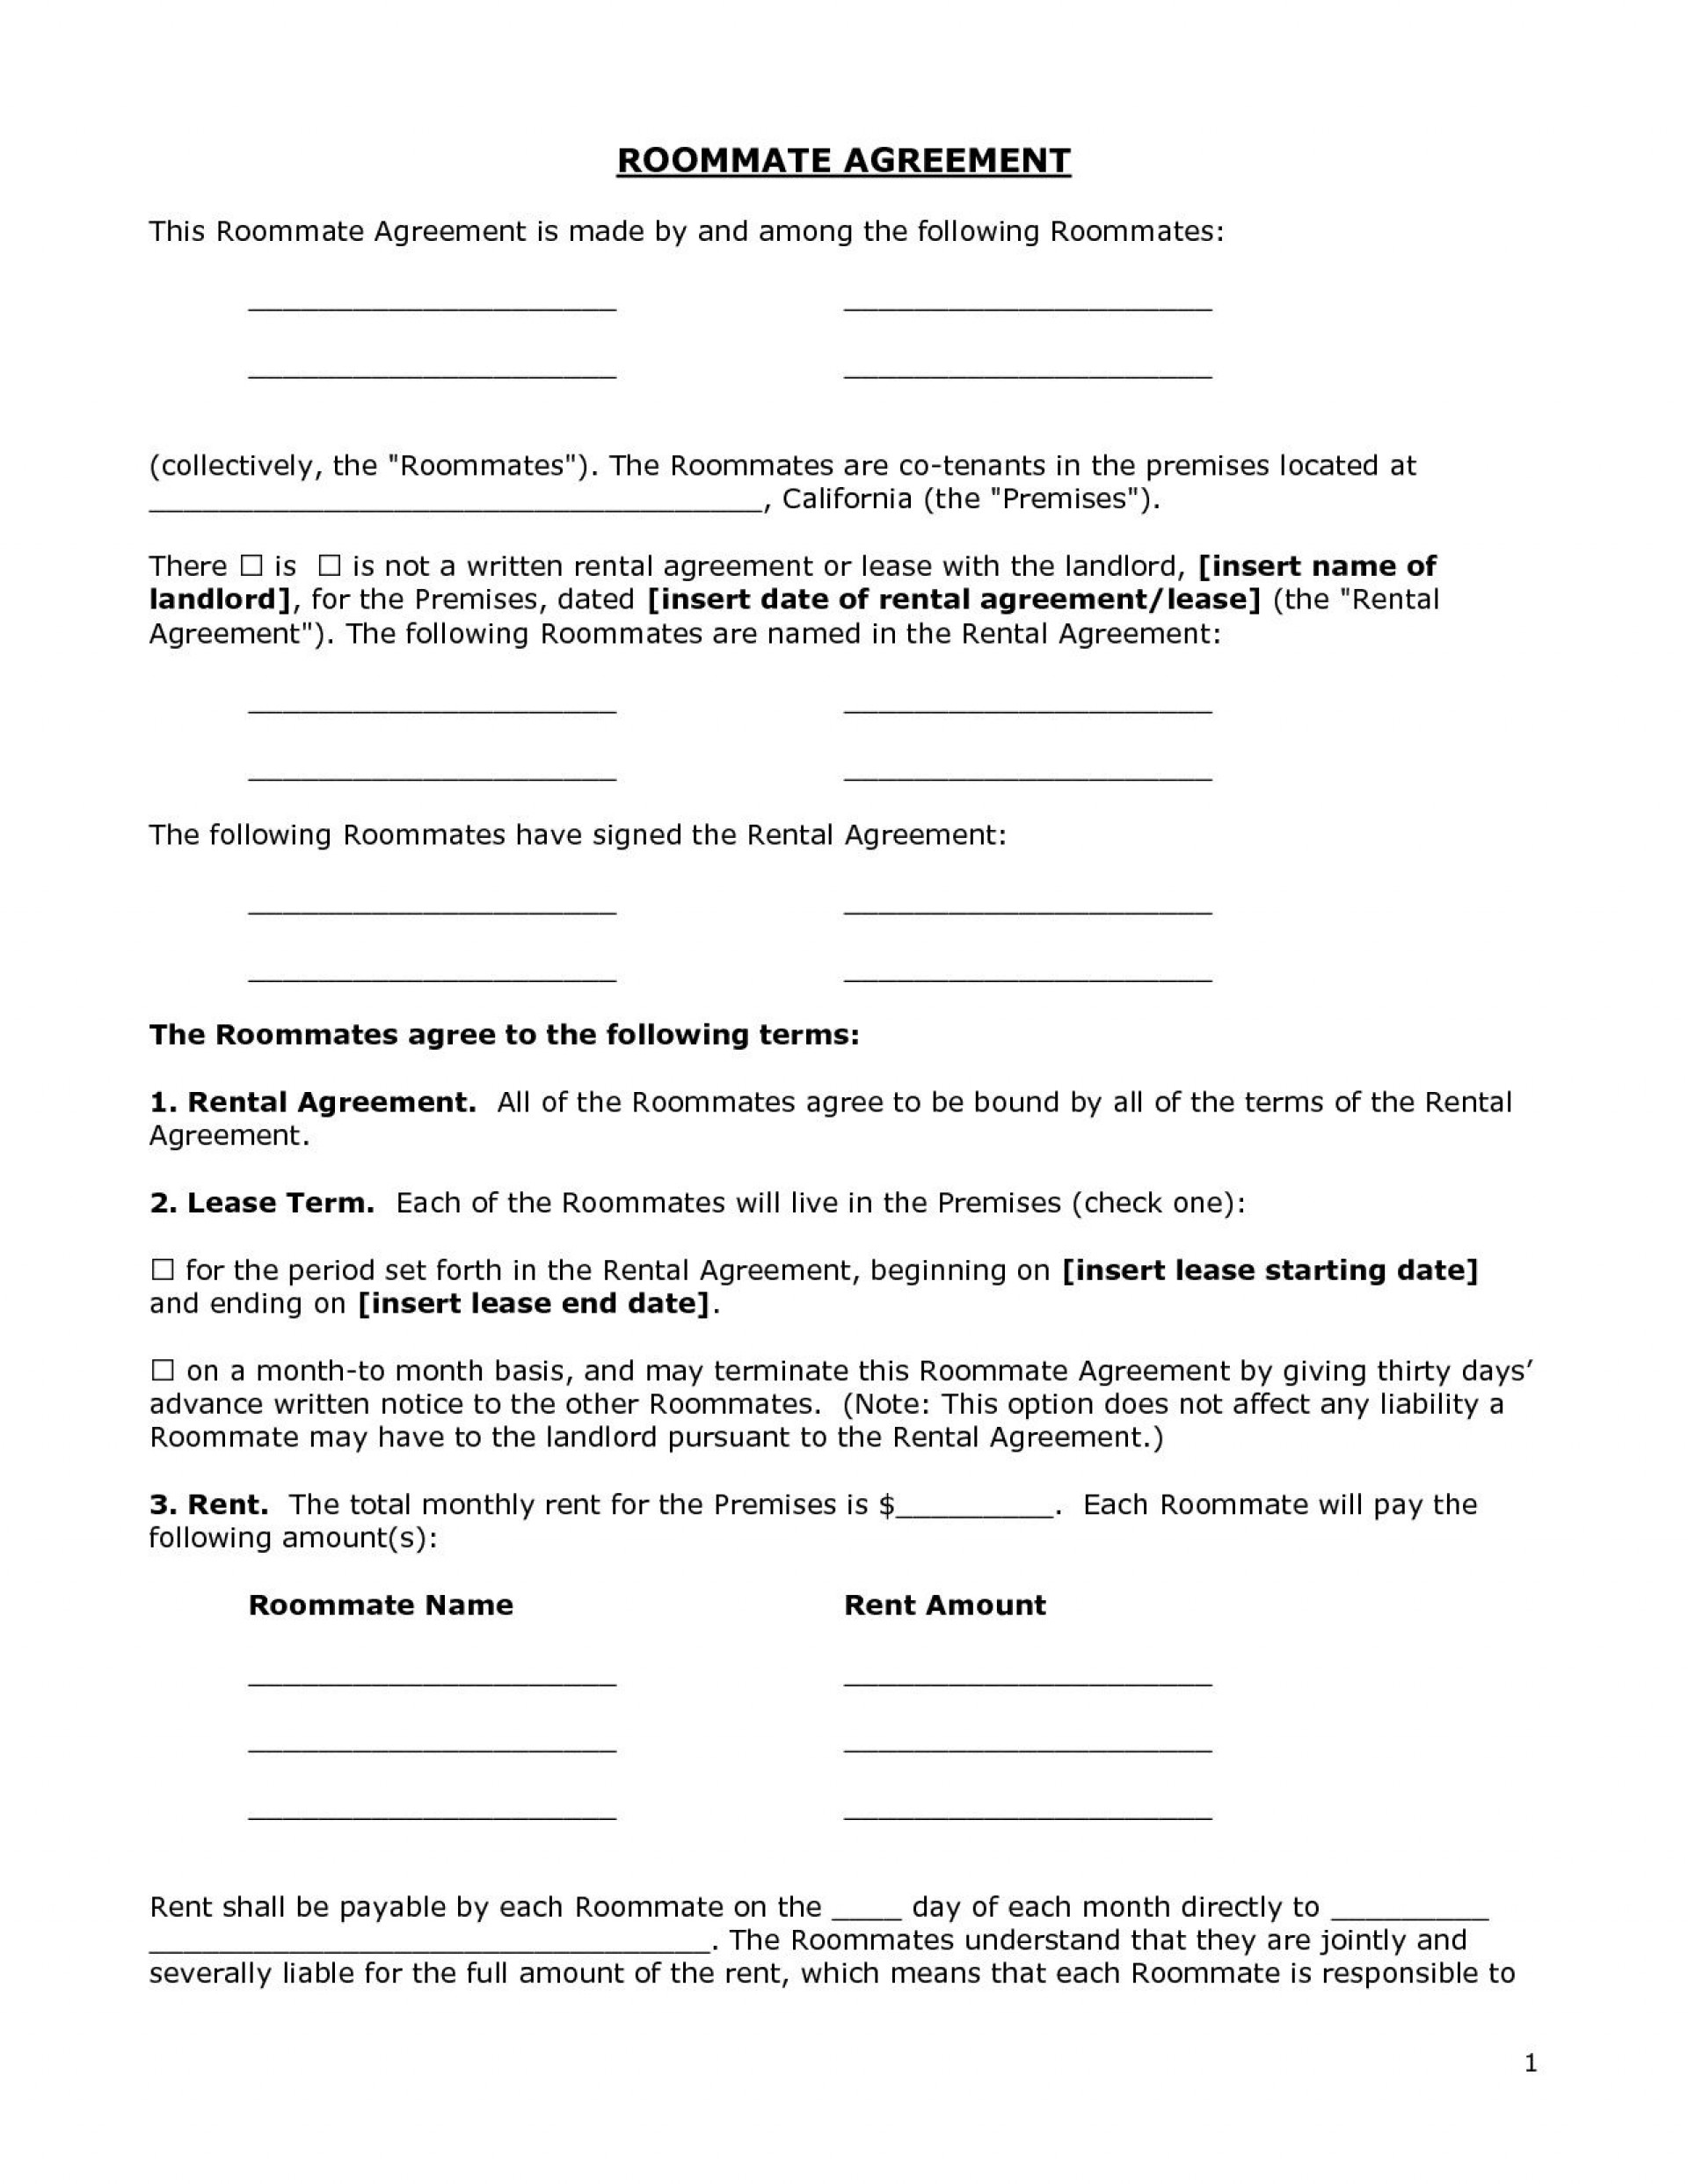 002 Unique Roommate Rental Agreement Template Highest Quality  Form Free Contract1920